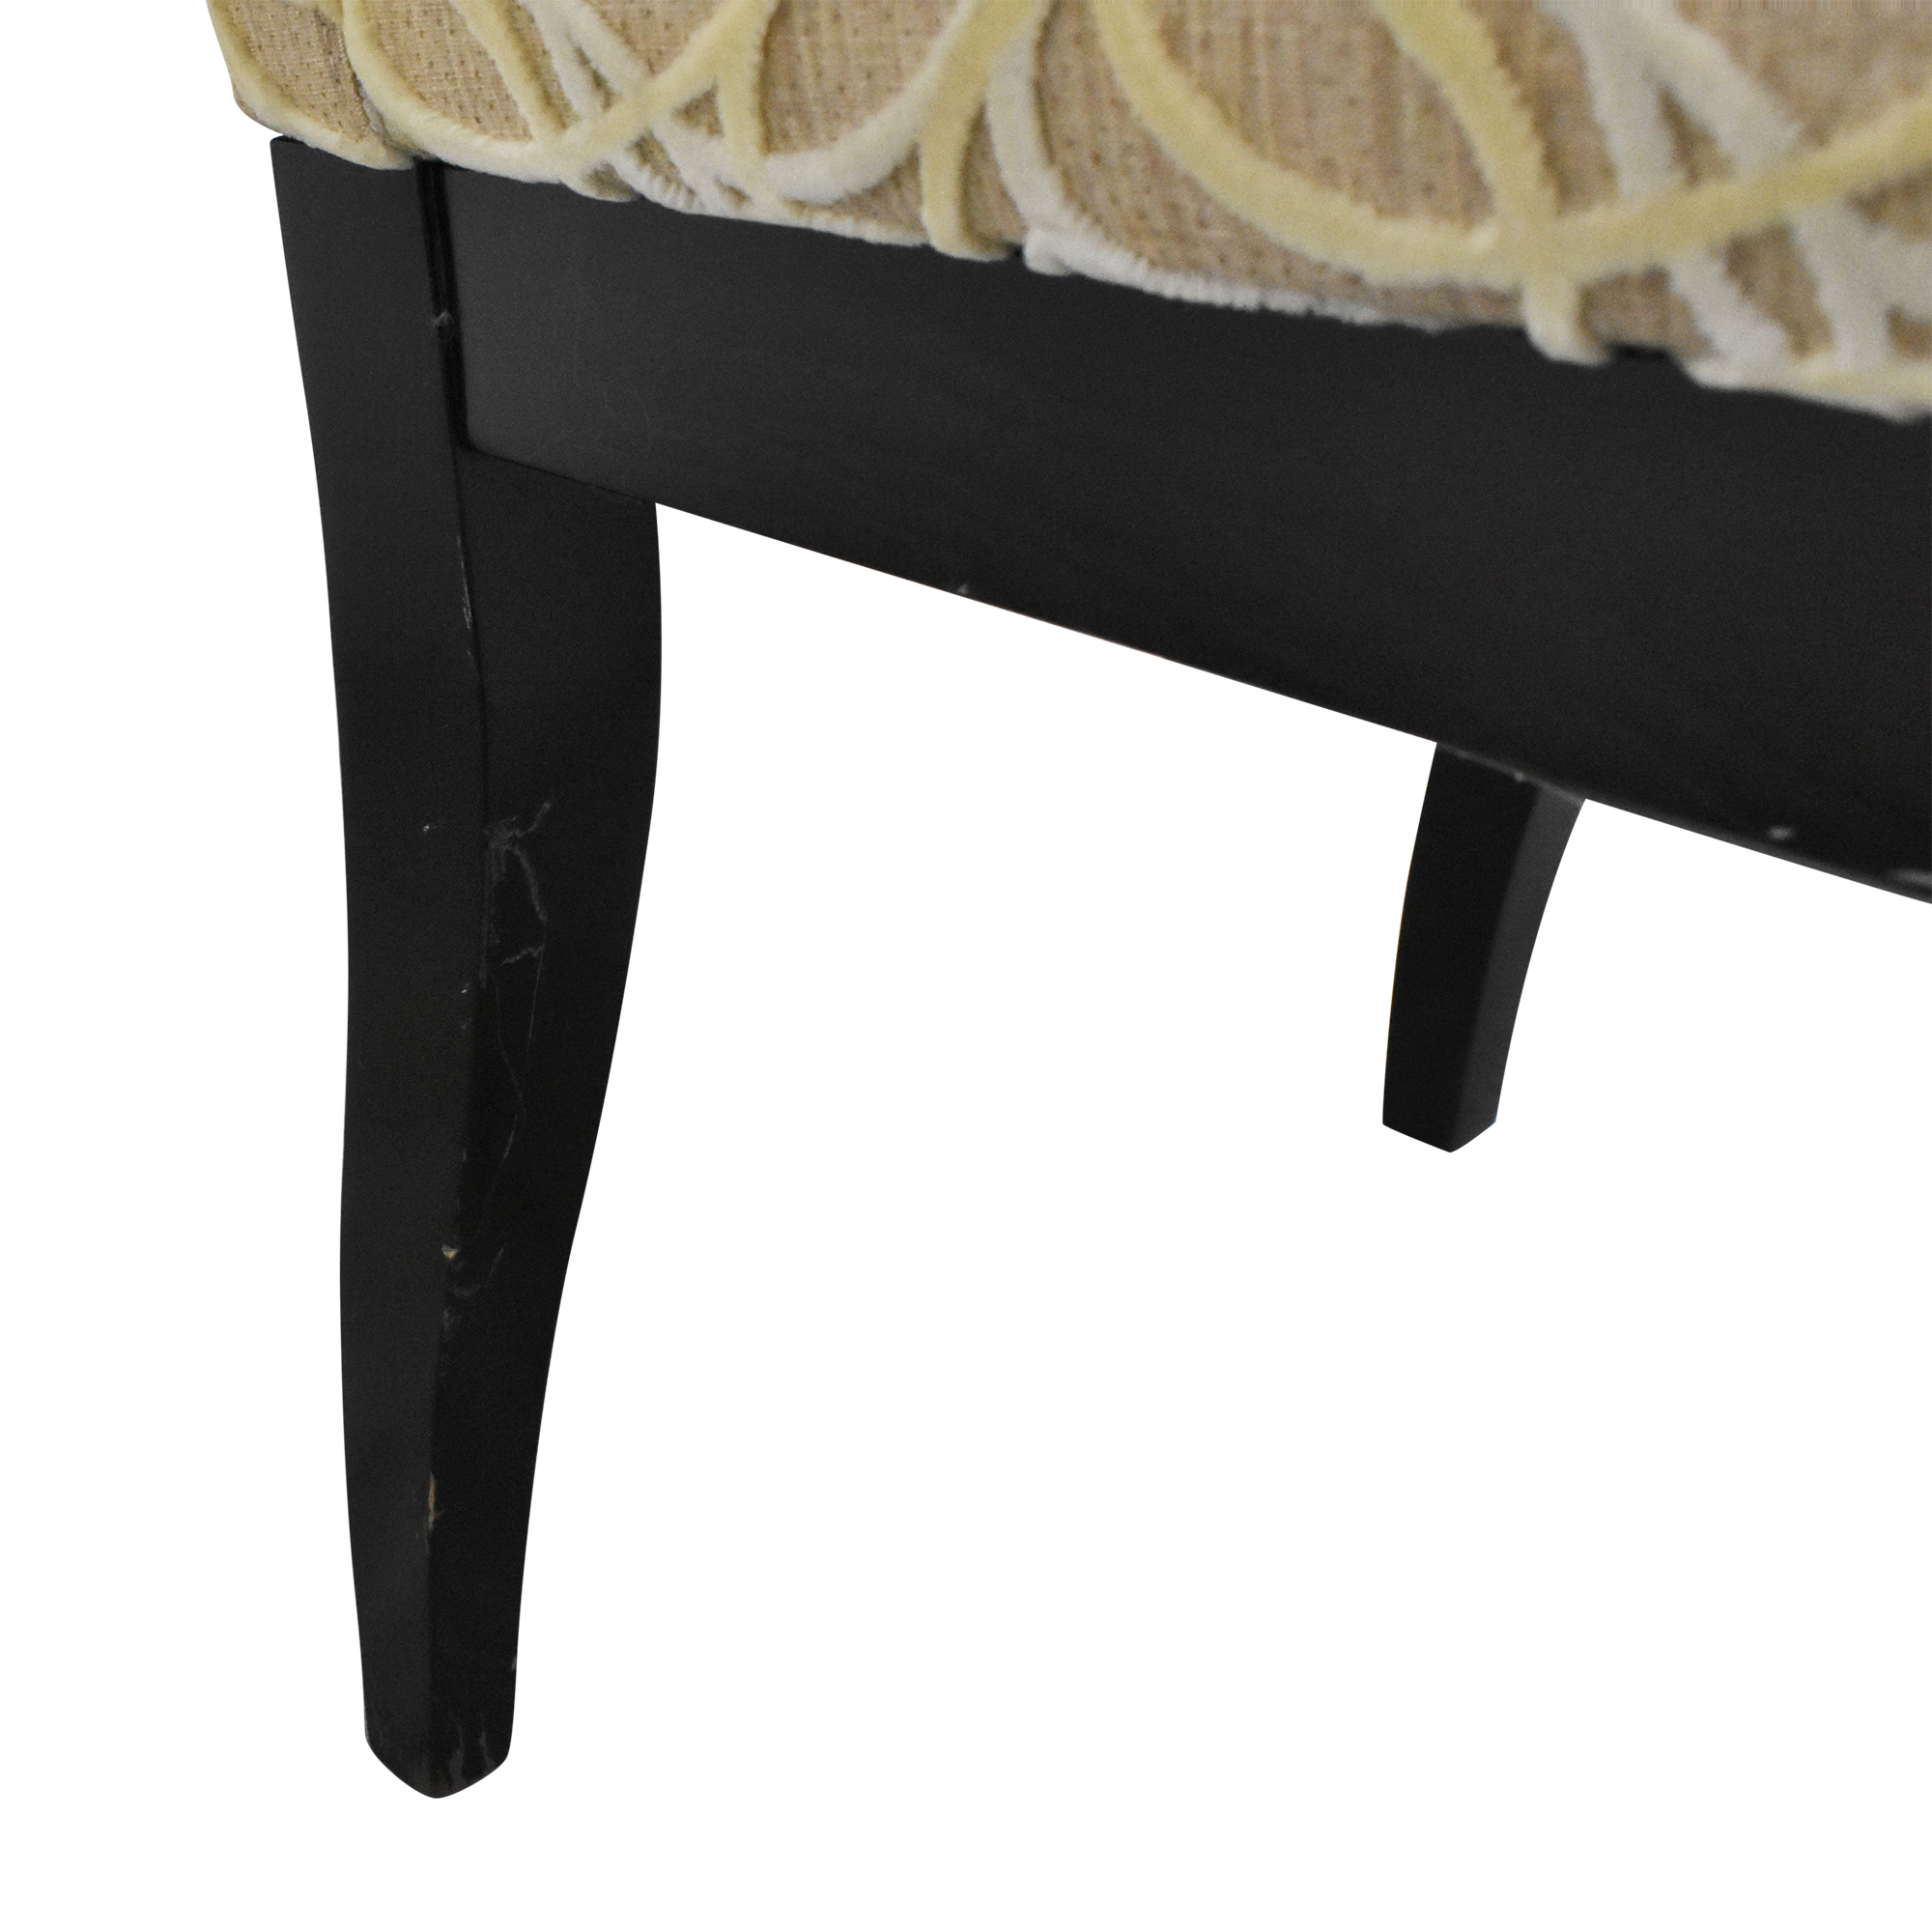 Bolier & Company Bolier & Company Upholstered Dining Chairs second hand